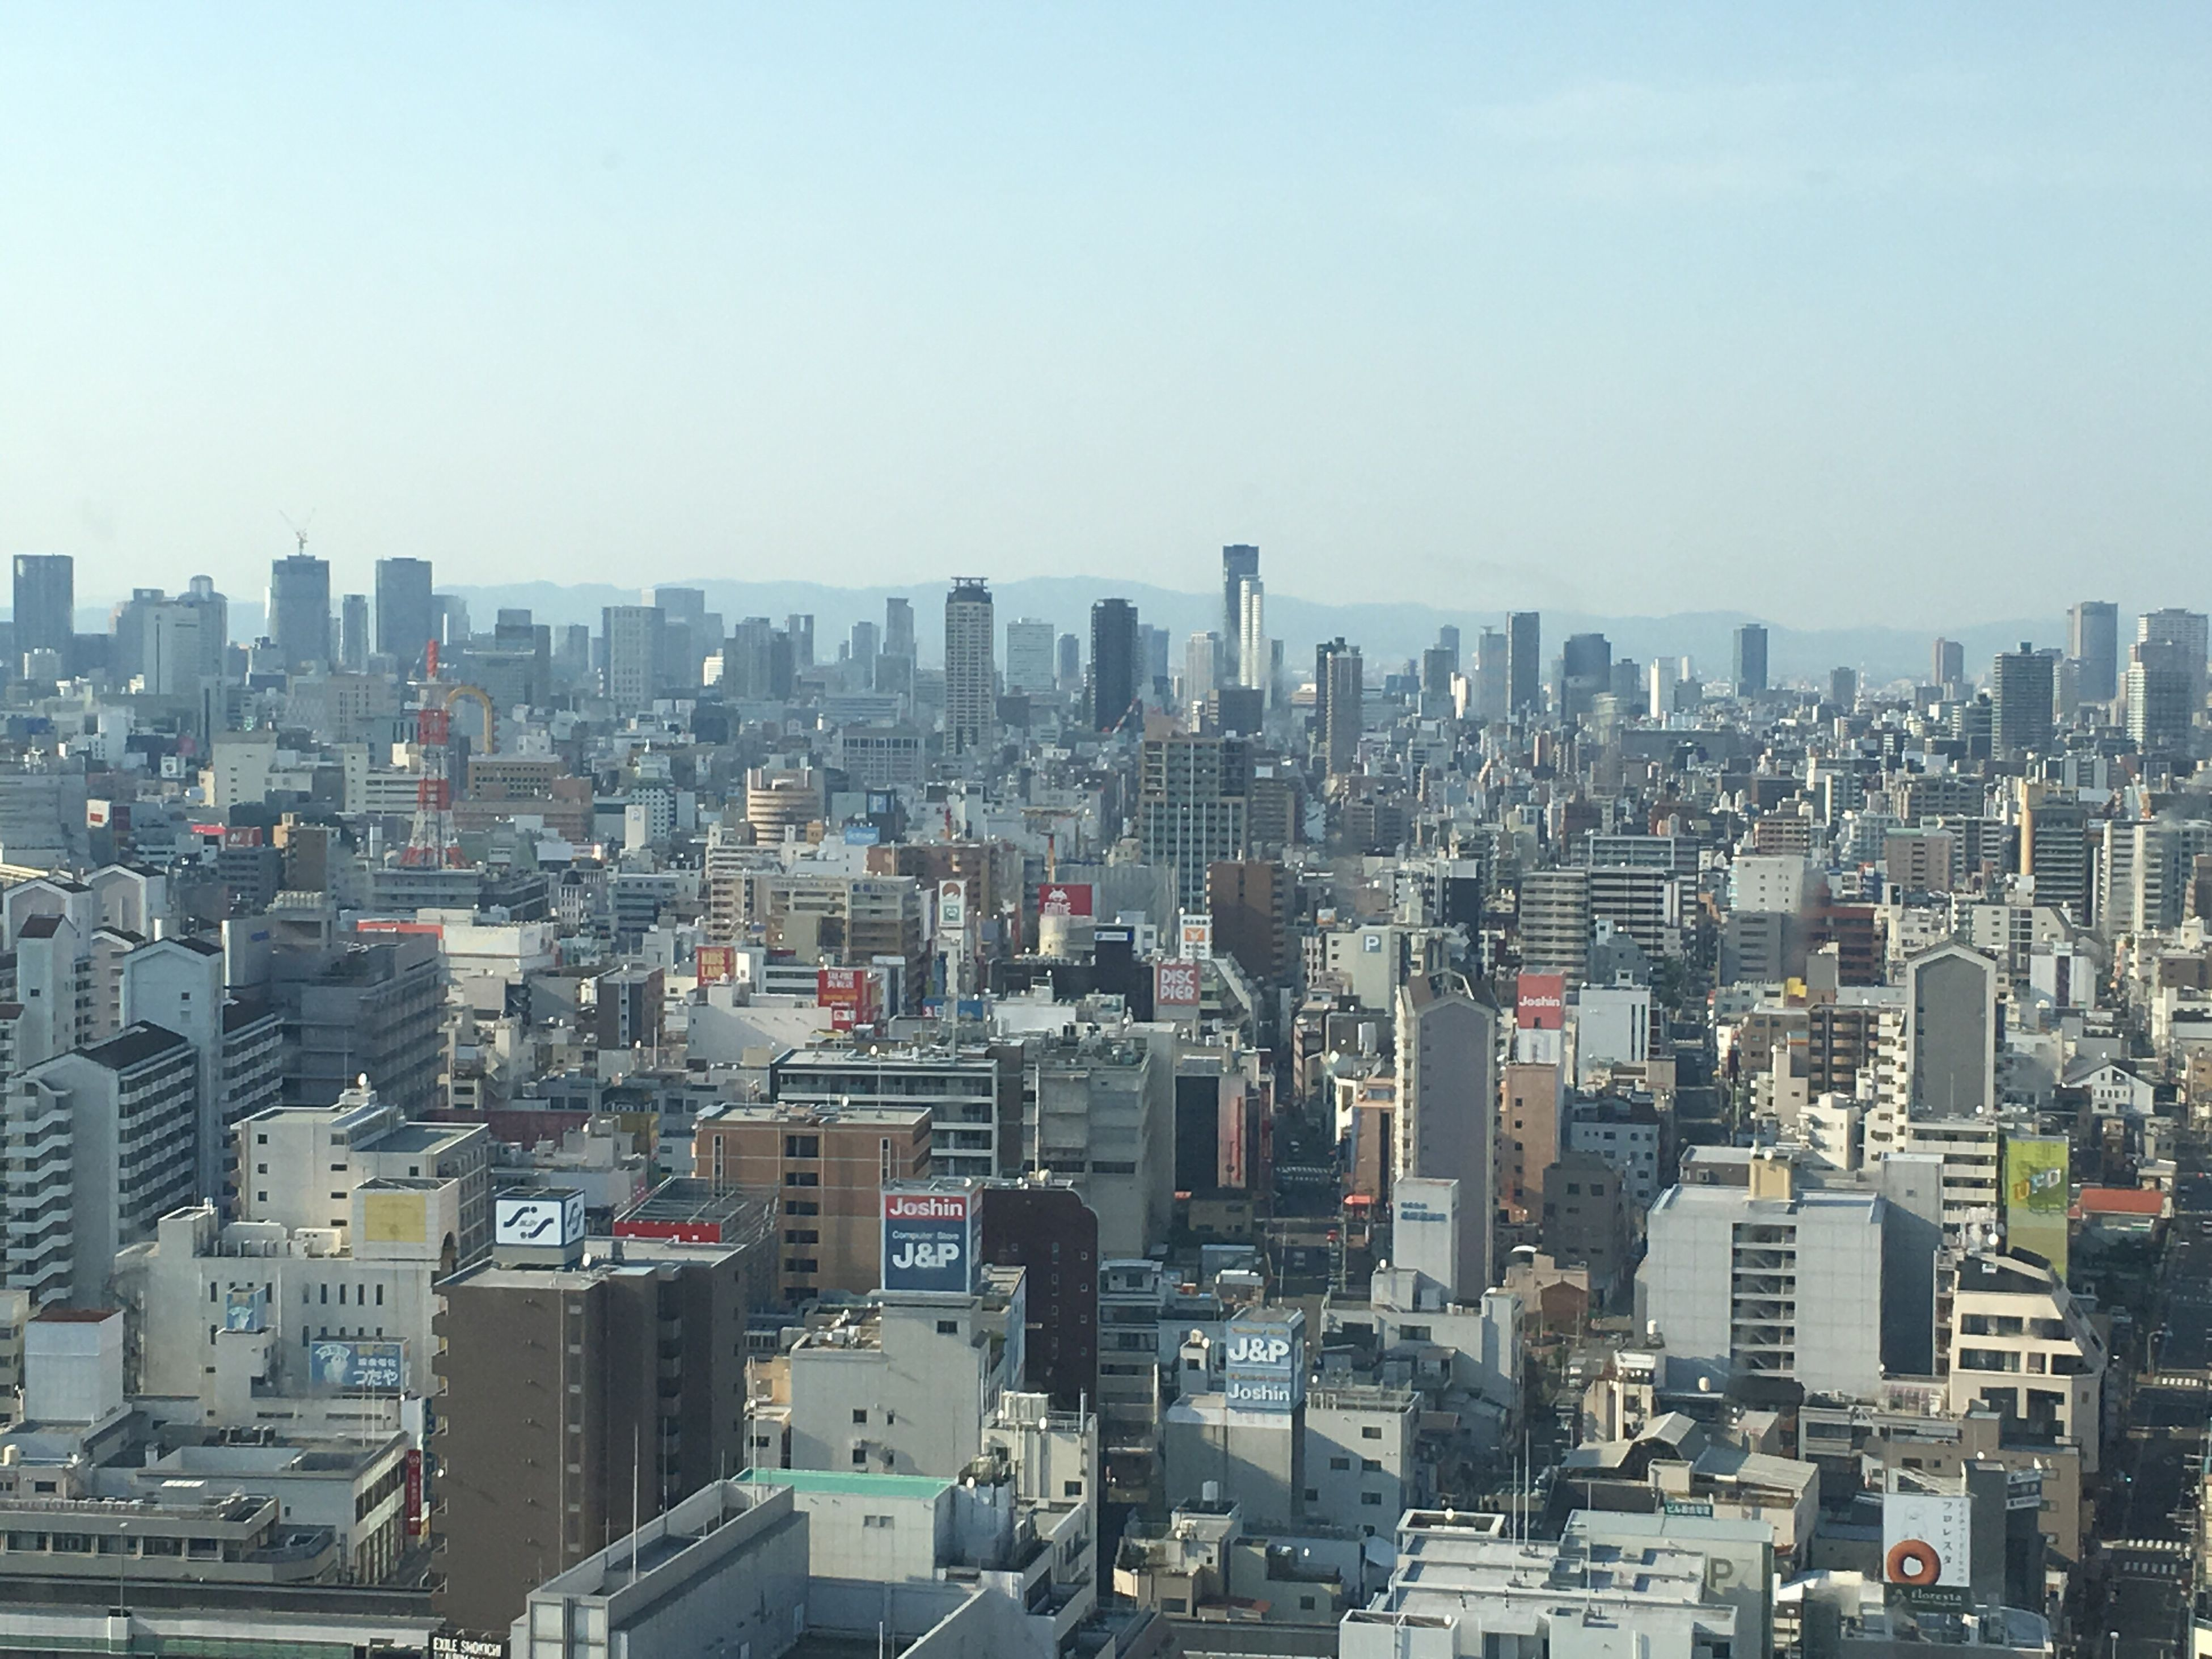 city, cityscape, building exterior, architecture, built structure, crowded, skyscraper, clear sky, high angle view, copy space, tall - high, tower, city life, office building, residential district, modern, urban skyline, capital cities, residential building, tall